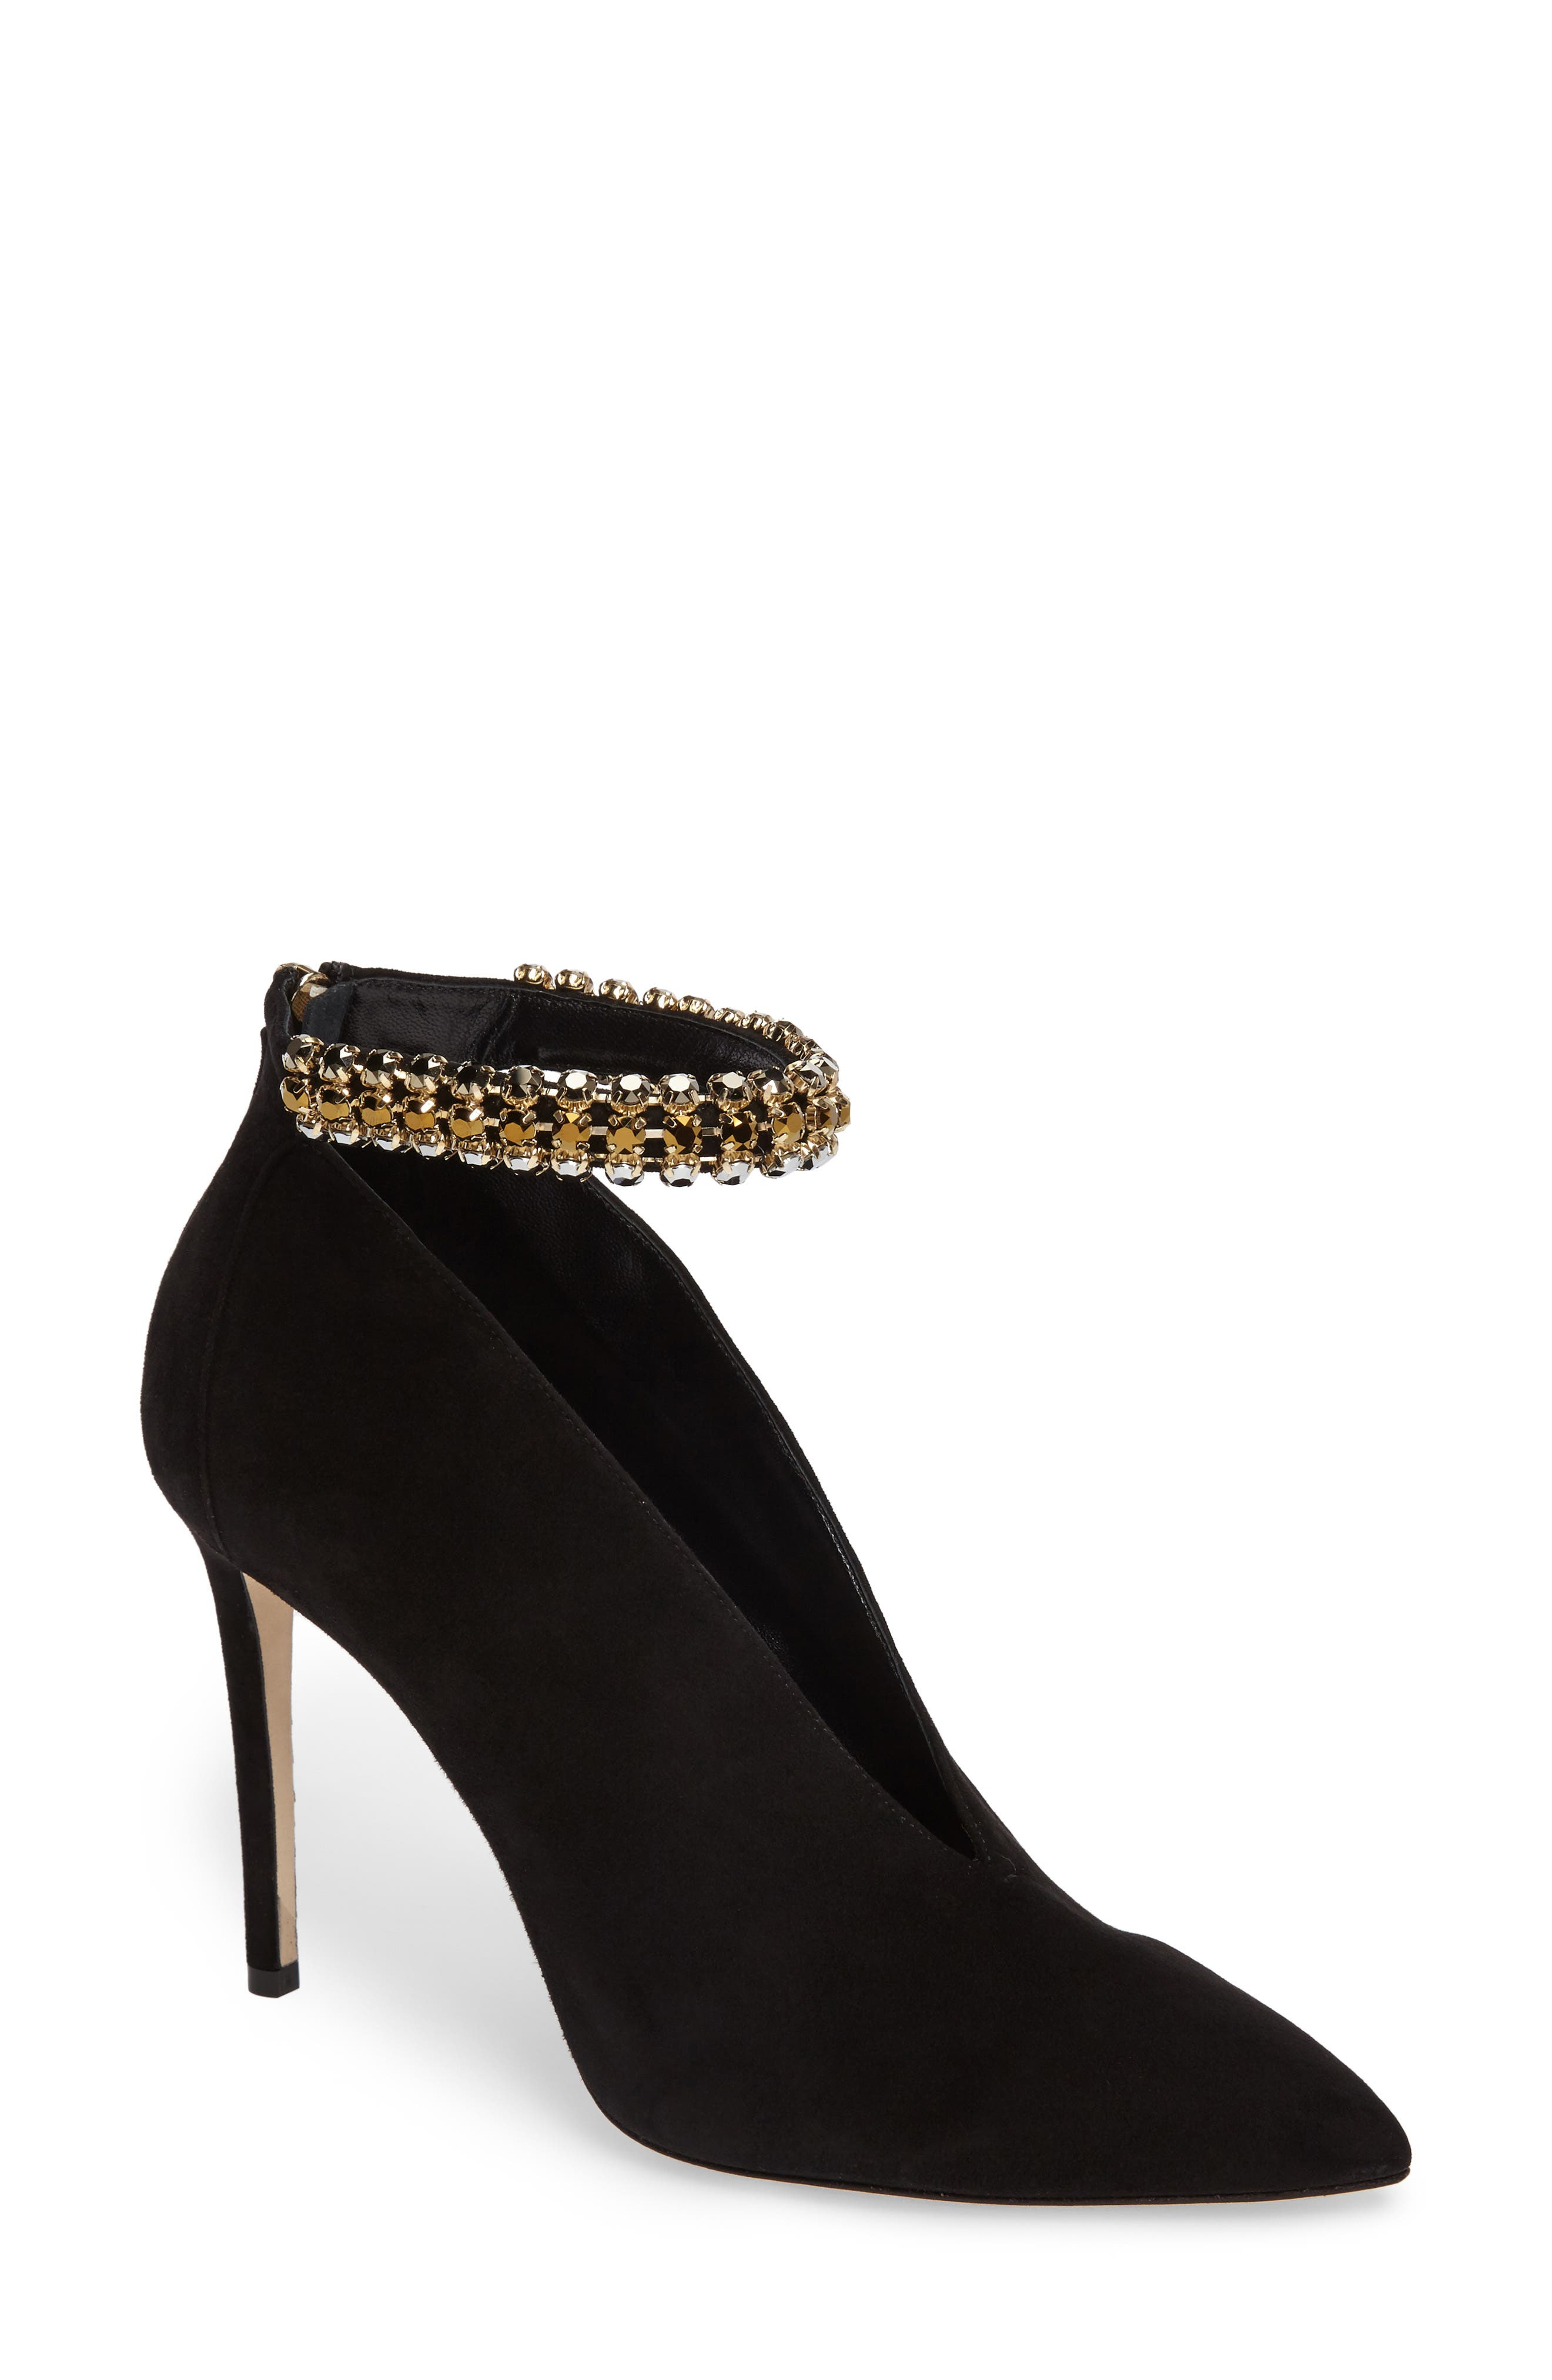 Main Image - Jimmy Choo Lux Embellished Ankle Strap Bootie (Women)